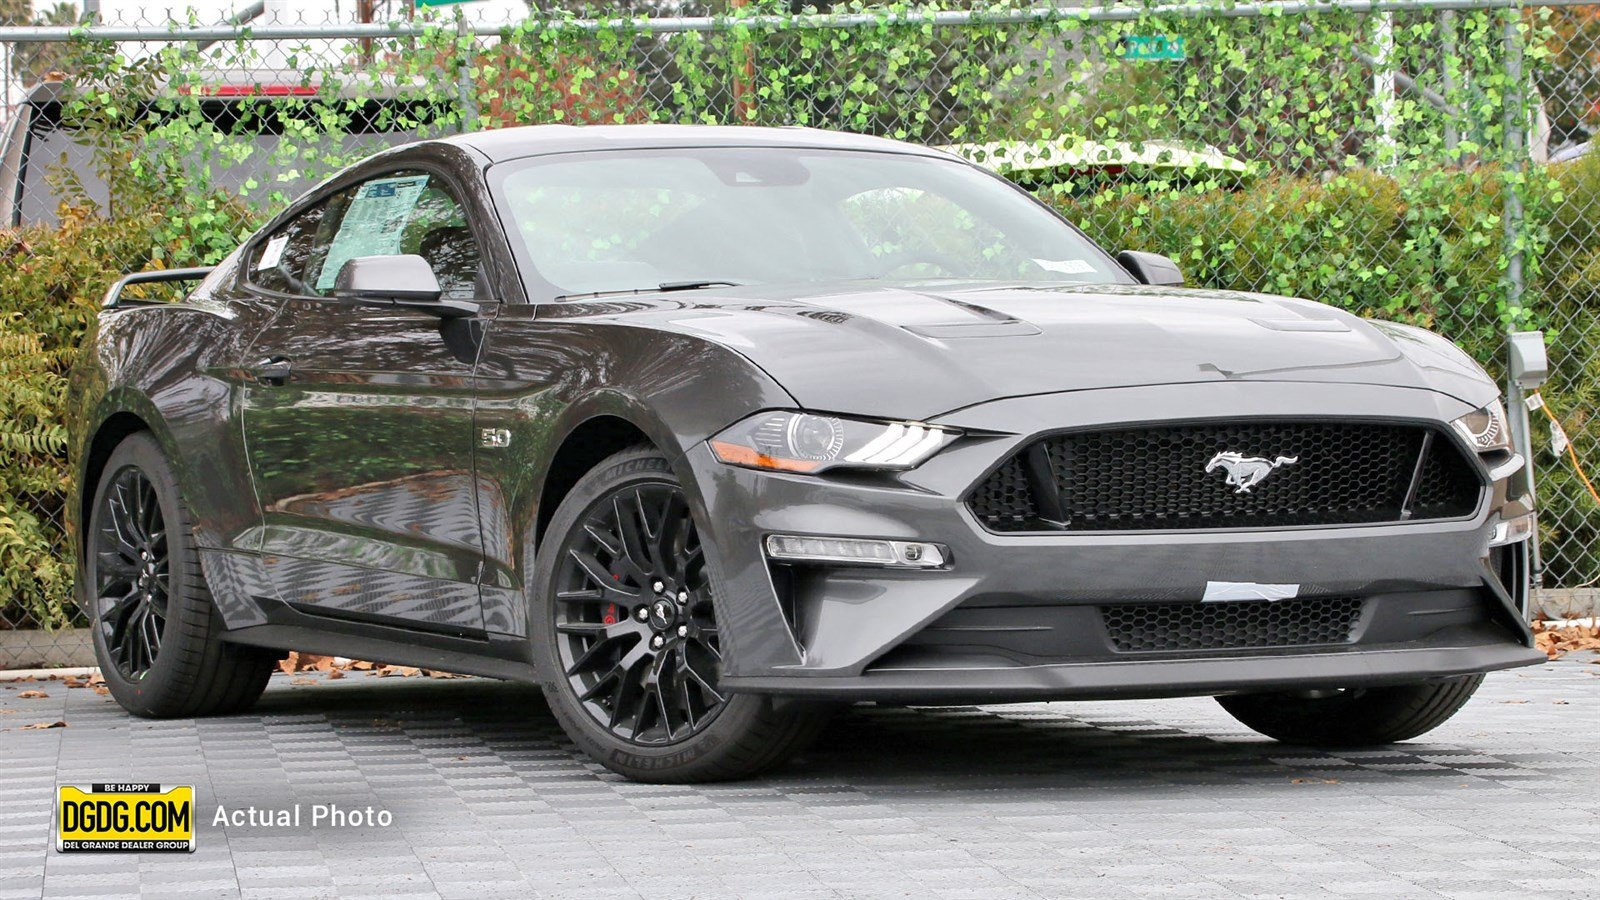 Ford Mustang Gt >> 2019 Ford Mustang Gt Premium With Navigation